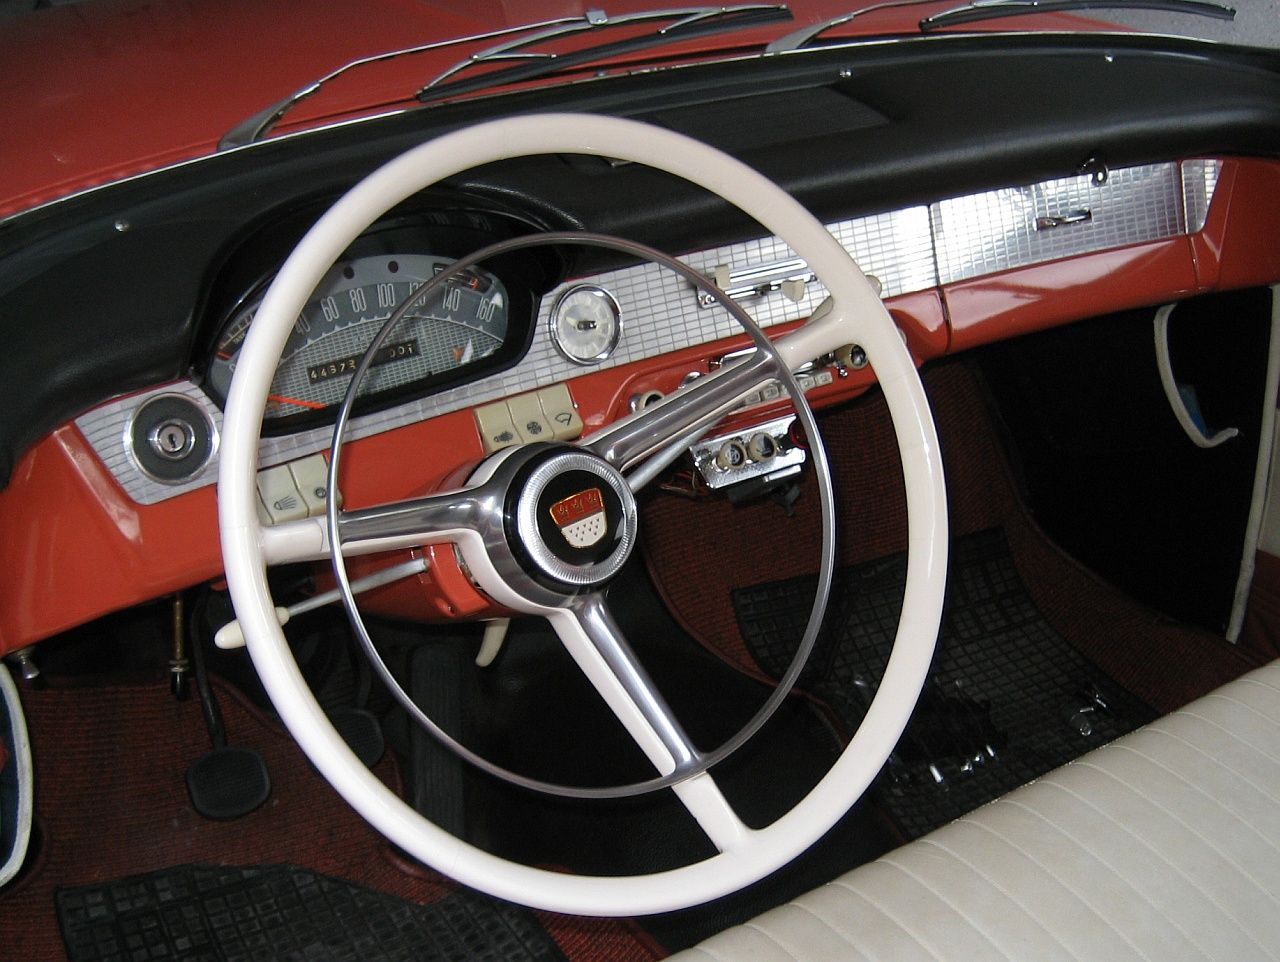 1958 - Ford Taunus 17 M de Luxe - P2 - dashboard   Ford ...